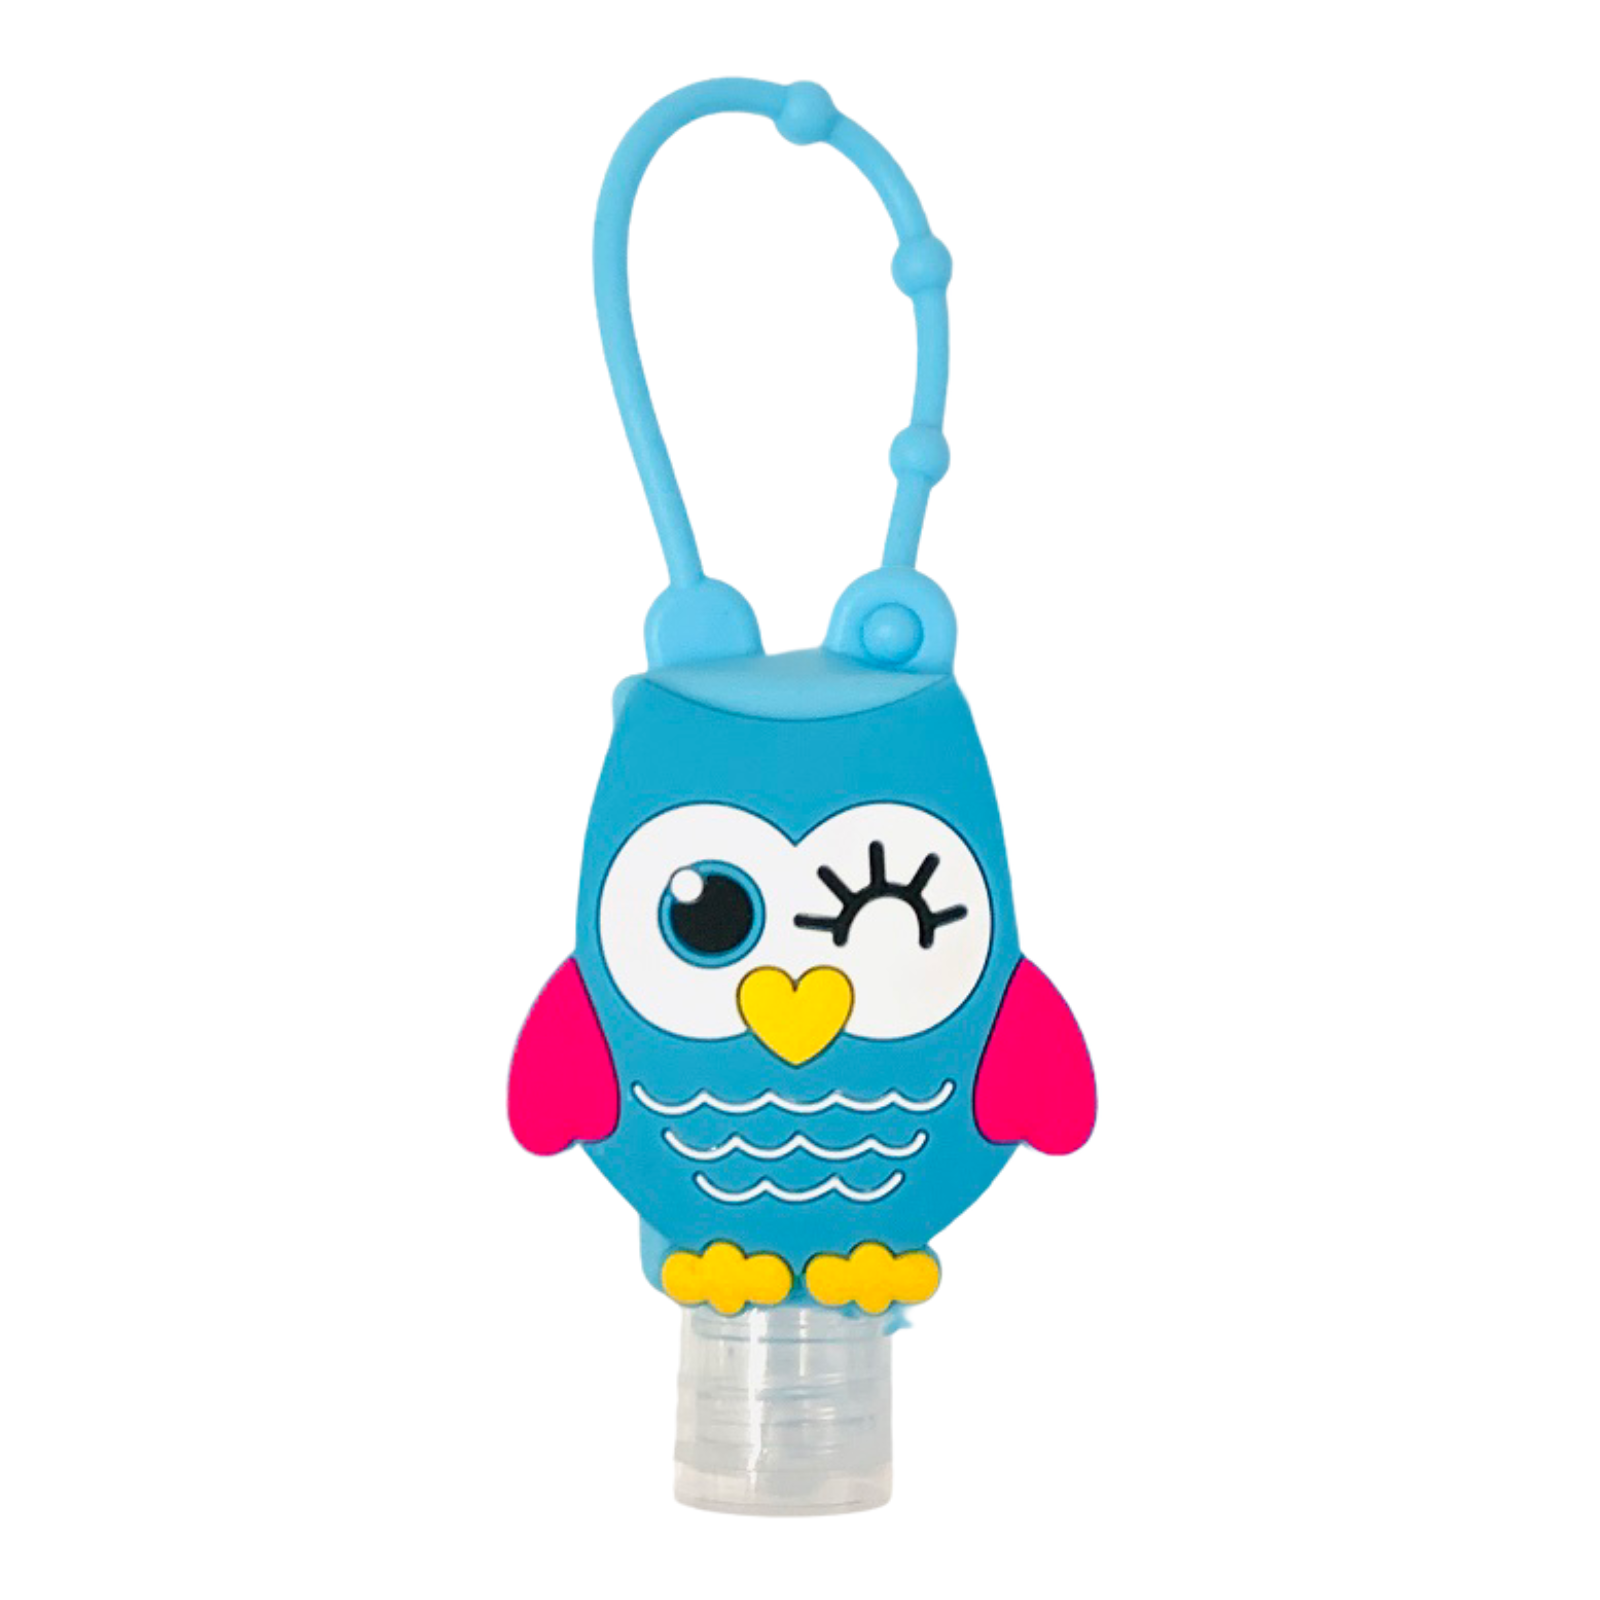 Silicone Bottle Holder for Mini 1oz Hand Sanitizer Owl